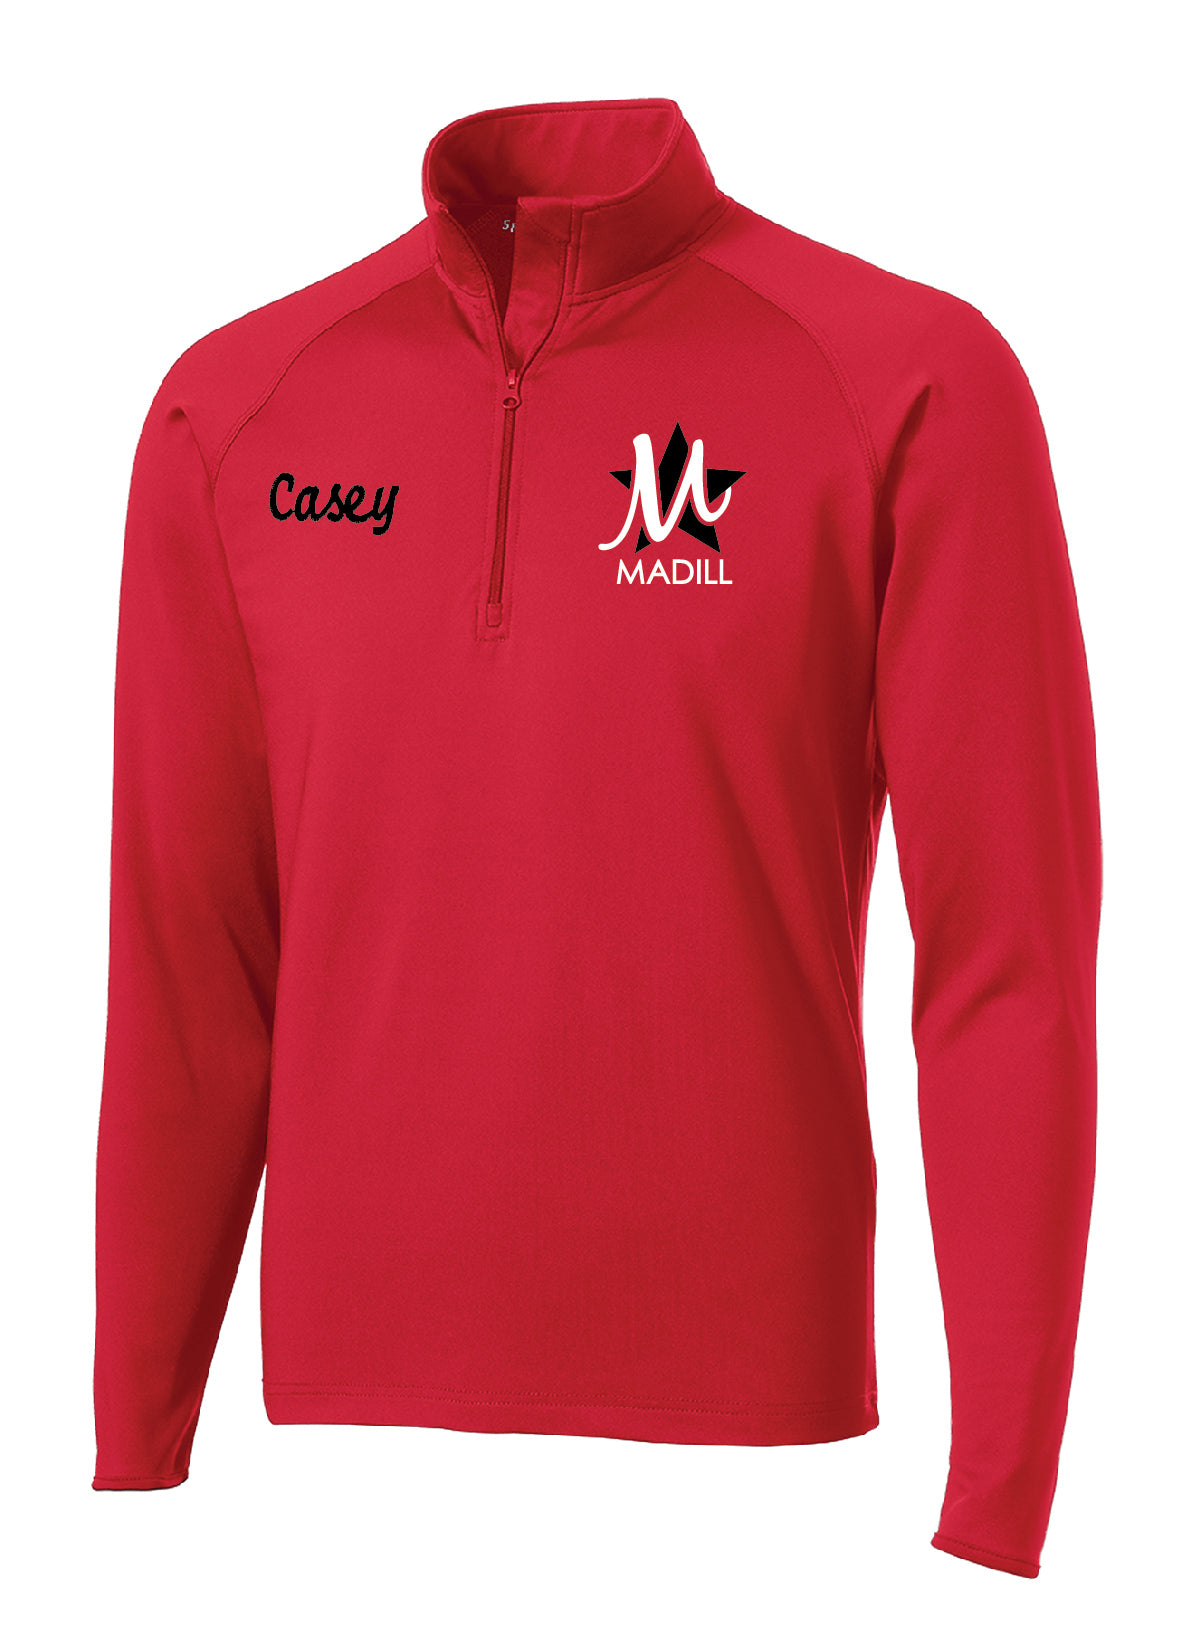 Q) Men's Quarter Zip Zip Pullover (RED OR BLACK)